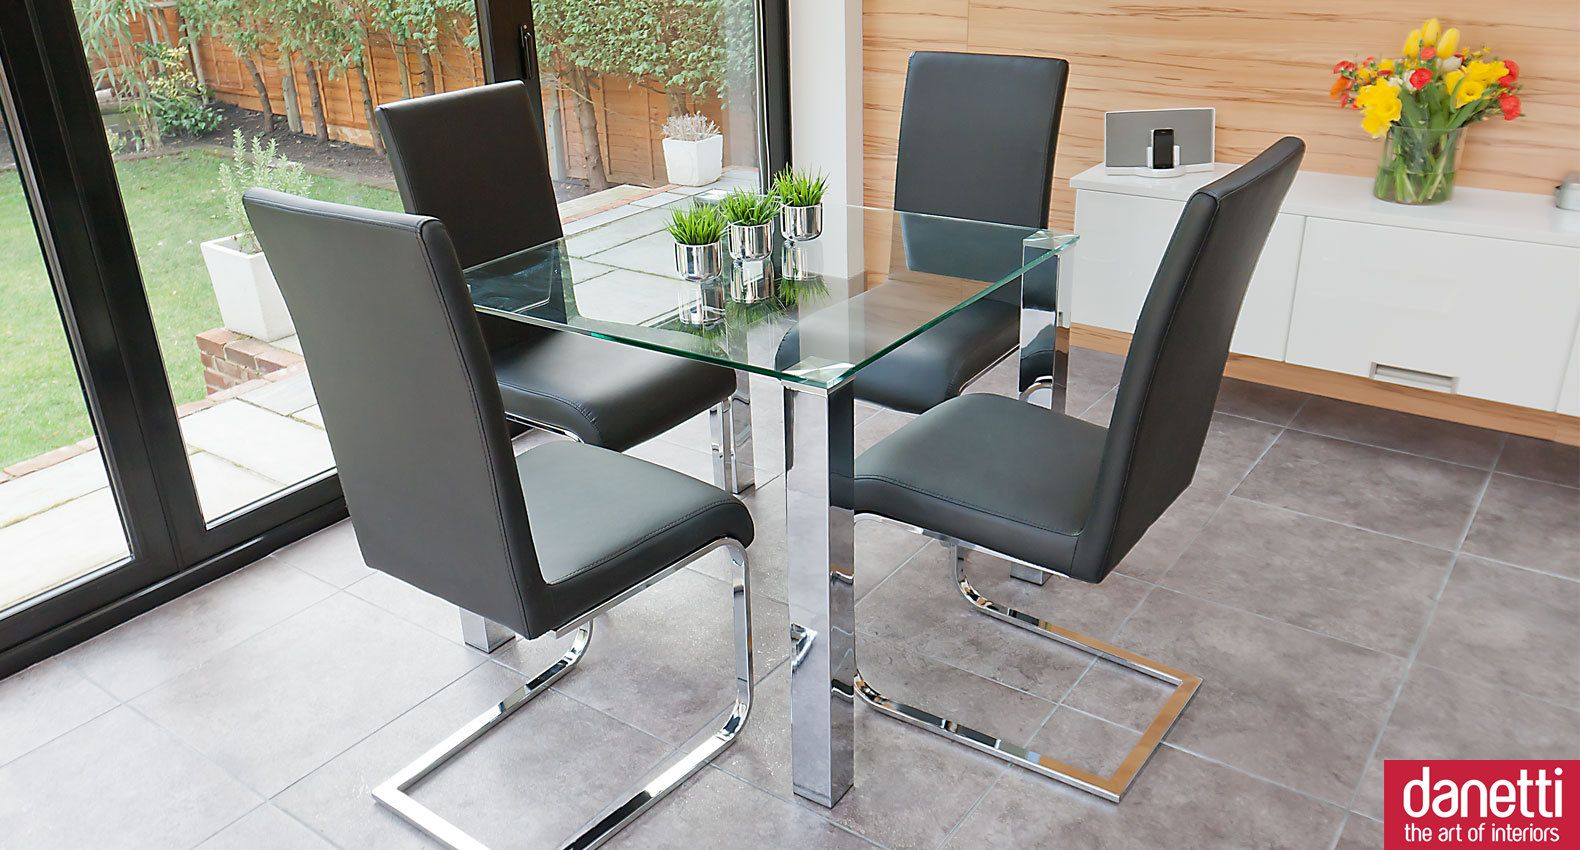 small kitchen table set Modern Glass Dining Set suitable for 2 or 4 people Chunky chrome legs support a